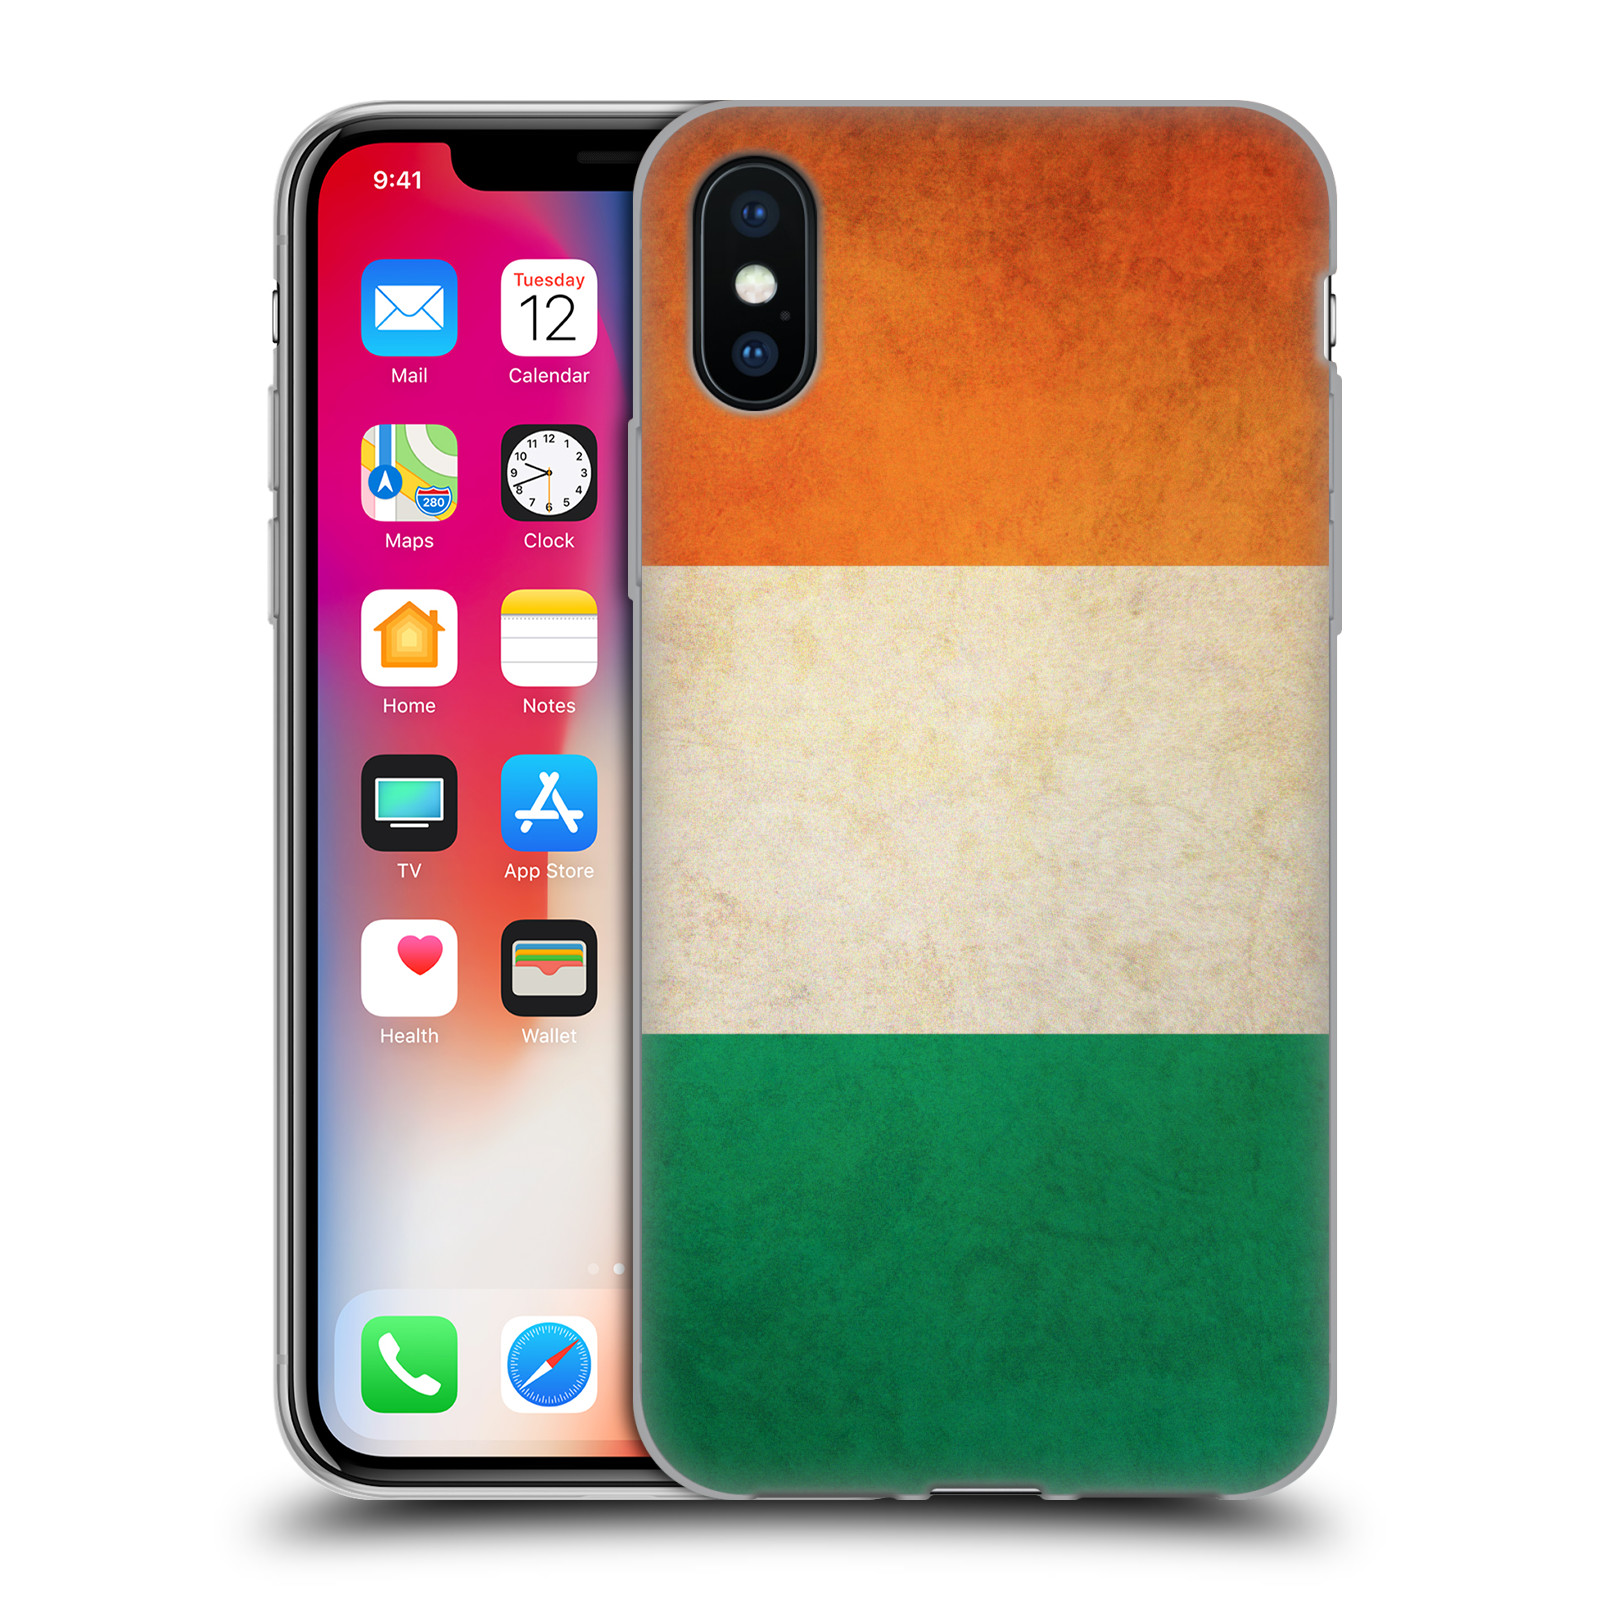 HEAD-CASE-DESIGNS-VINTAGE-FLAGS-SOFT-GEL-CASE-FOR-APPLE-iPHONE-PHONES